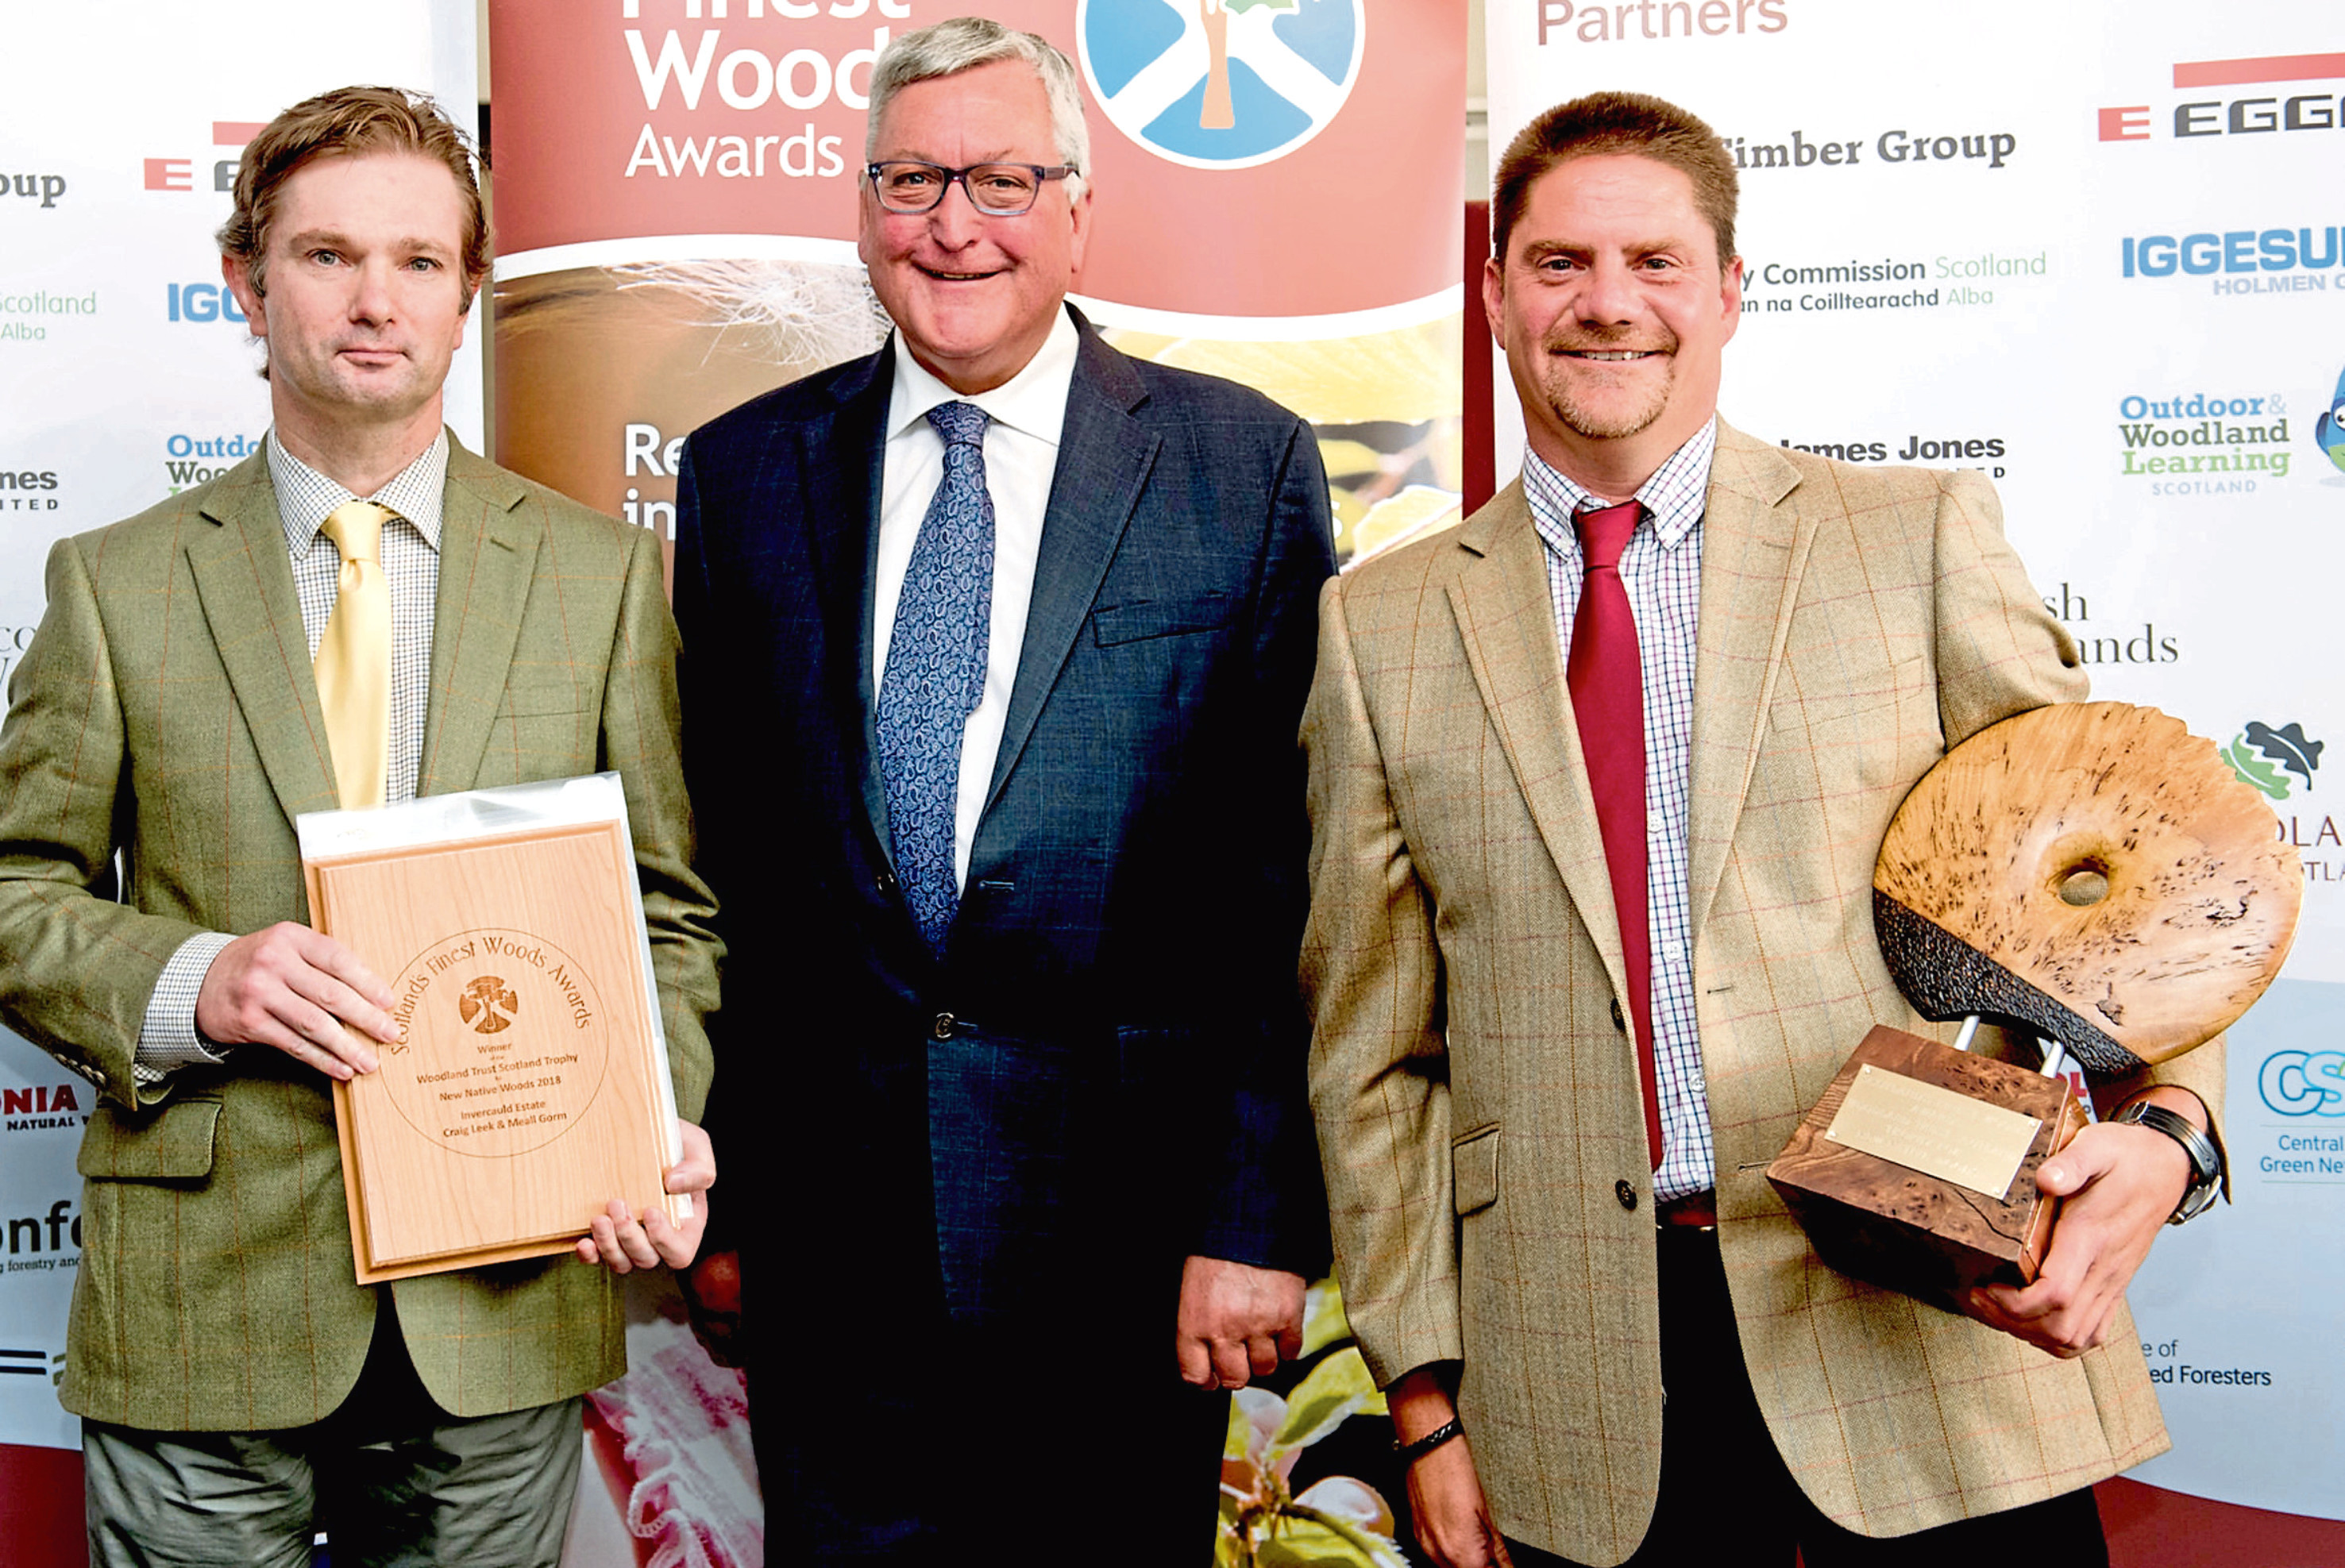 Angus McNicol, Estate Manager and Ian Hill, Forest Manager, with Fergus Ewing